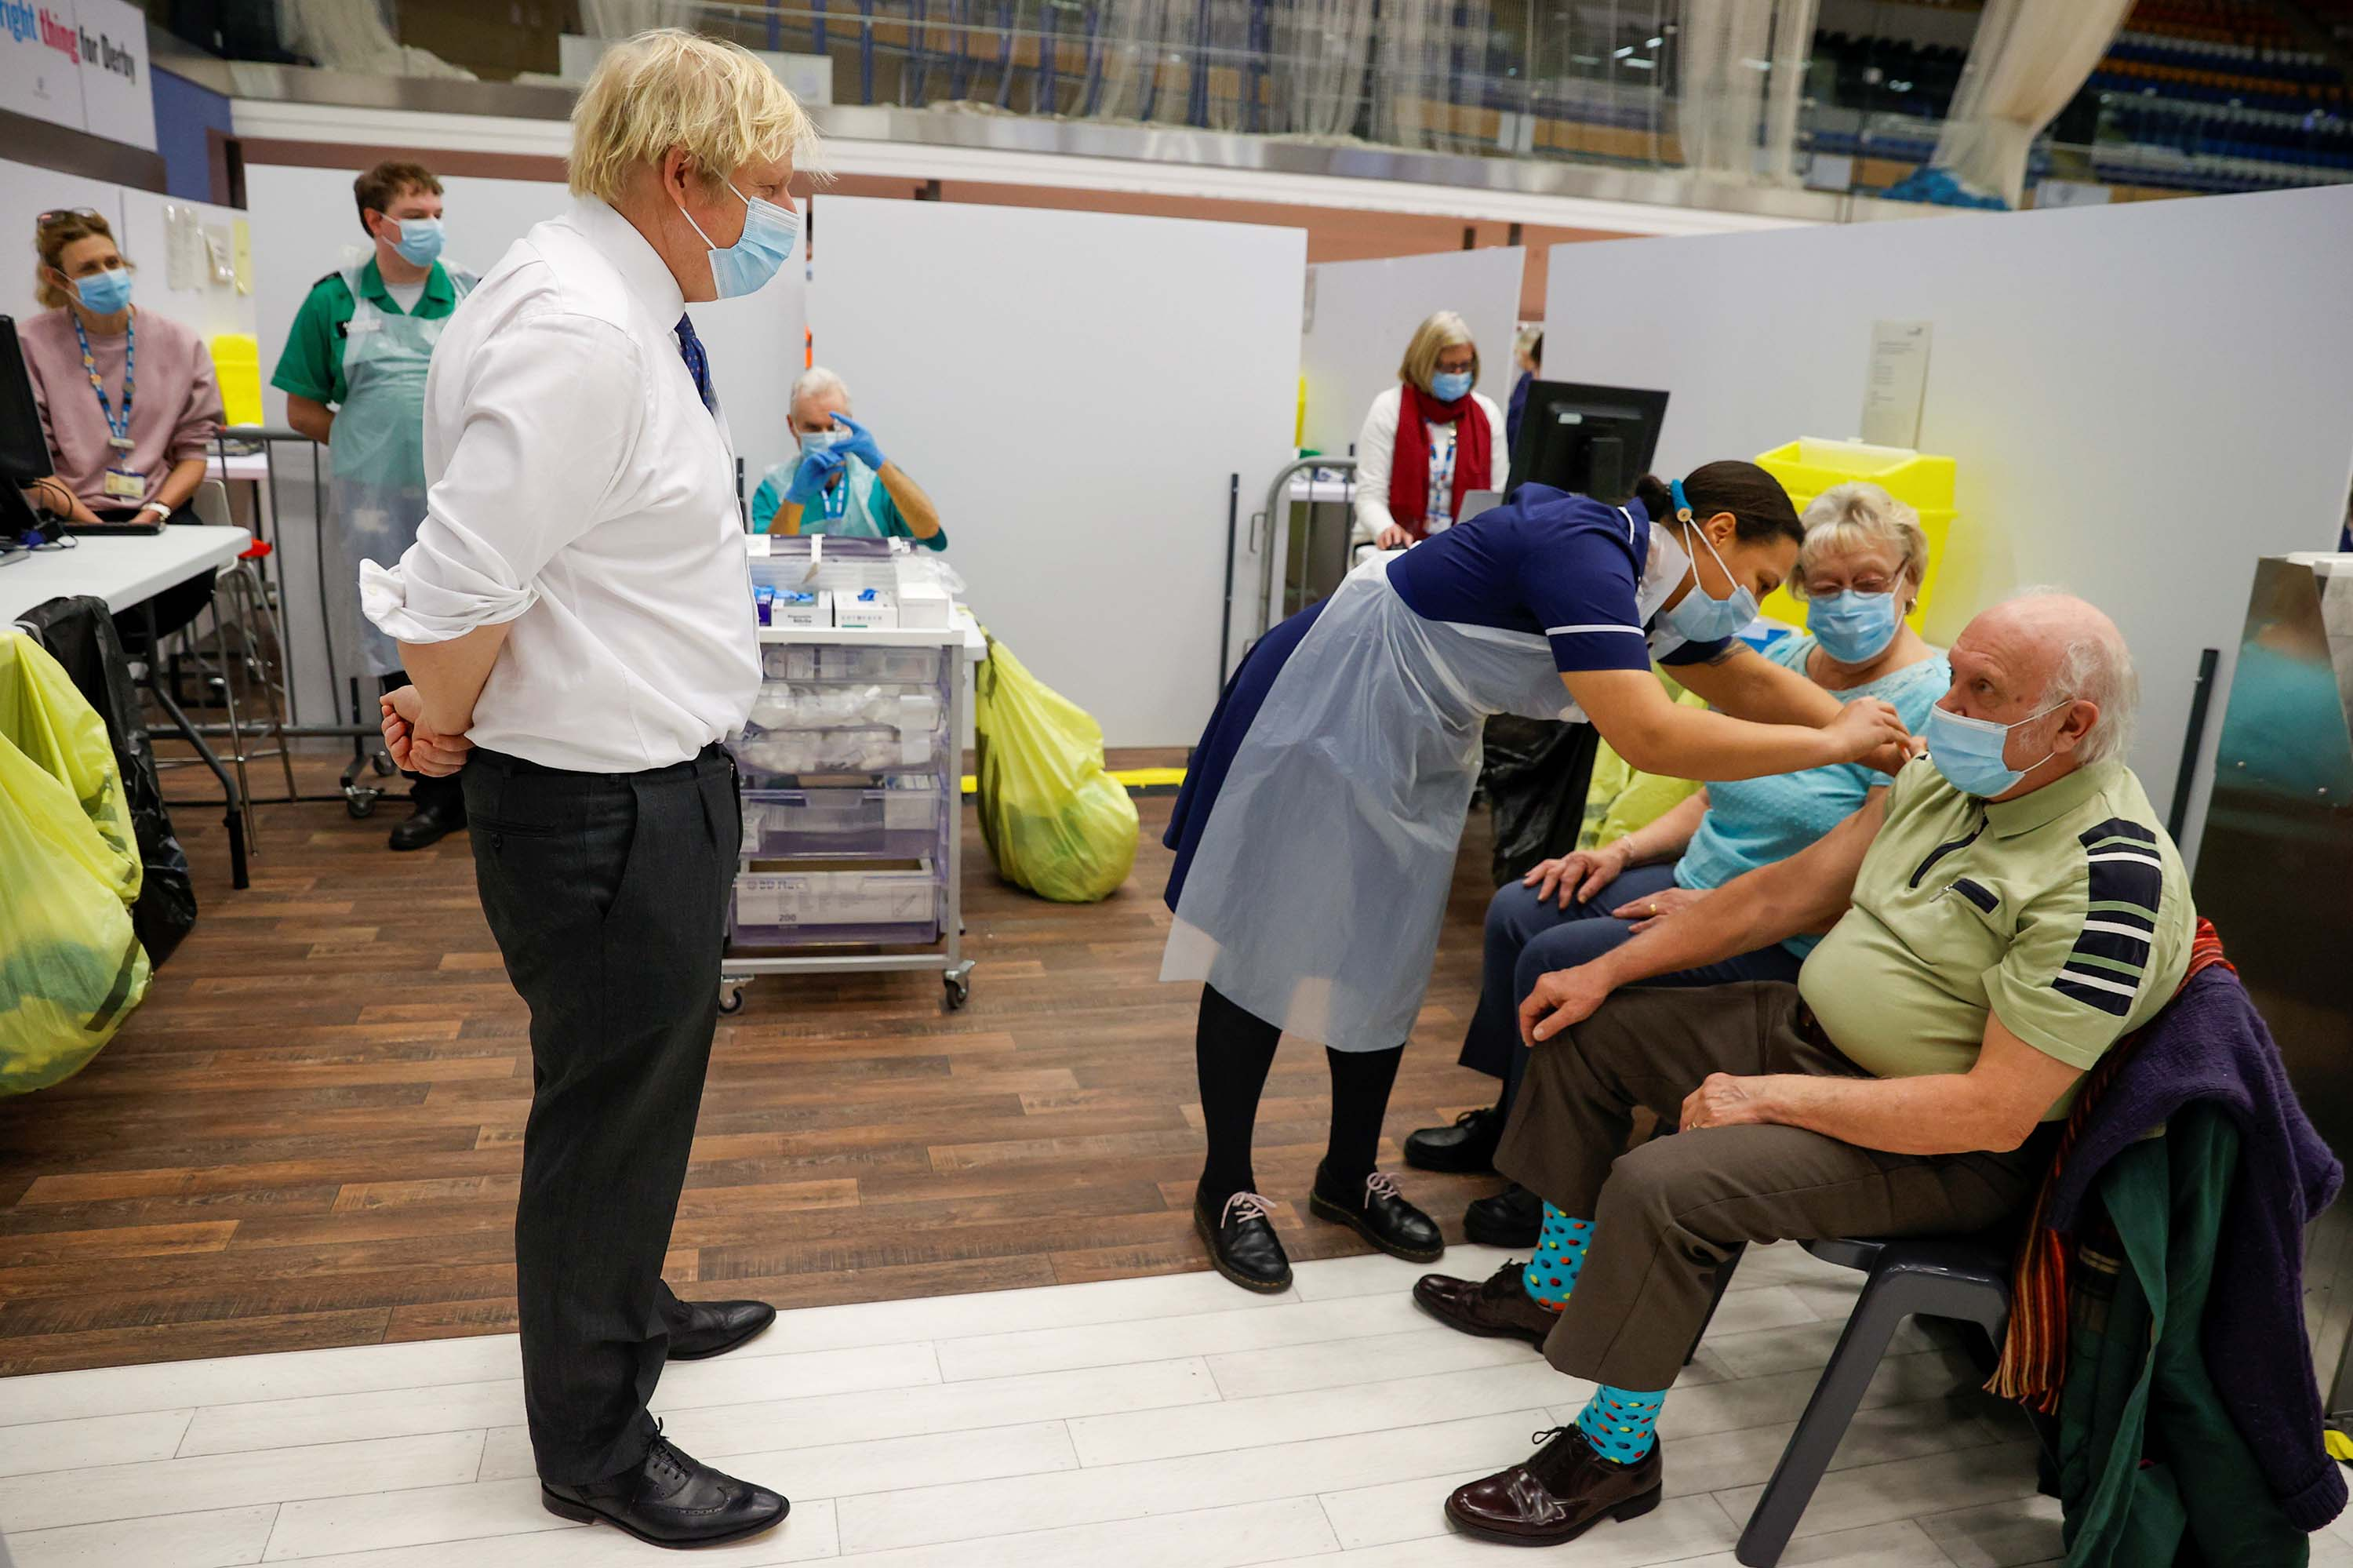 British Prime Minister Boris Johnson visits a vaccination center at the Derby Arena velodrome on February 8, in Derby, England.